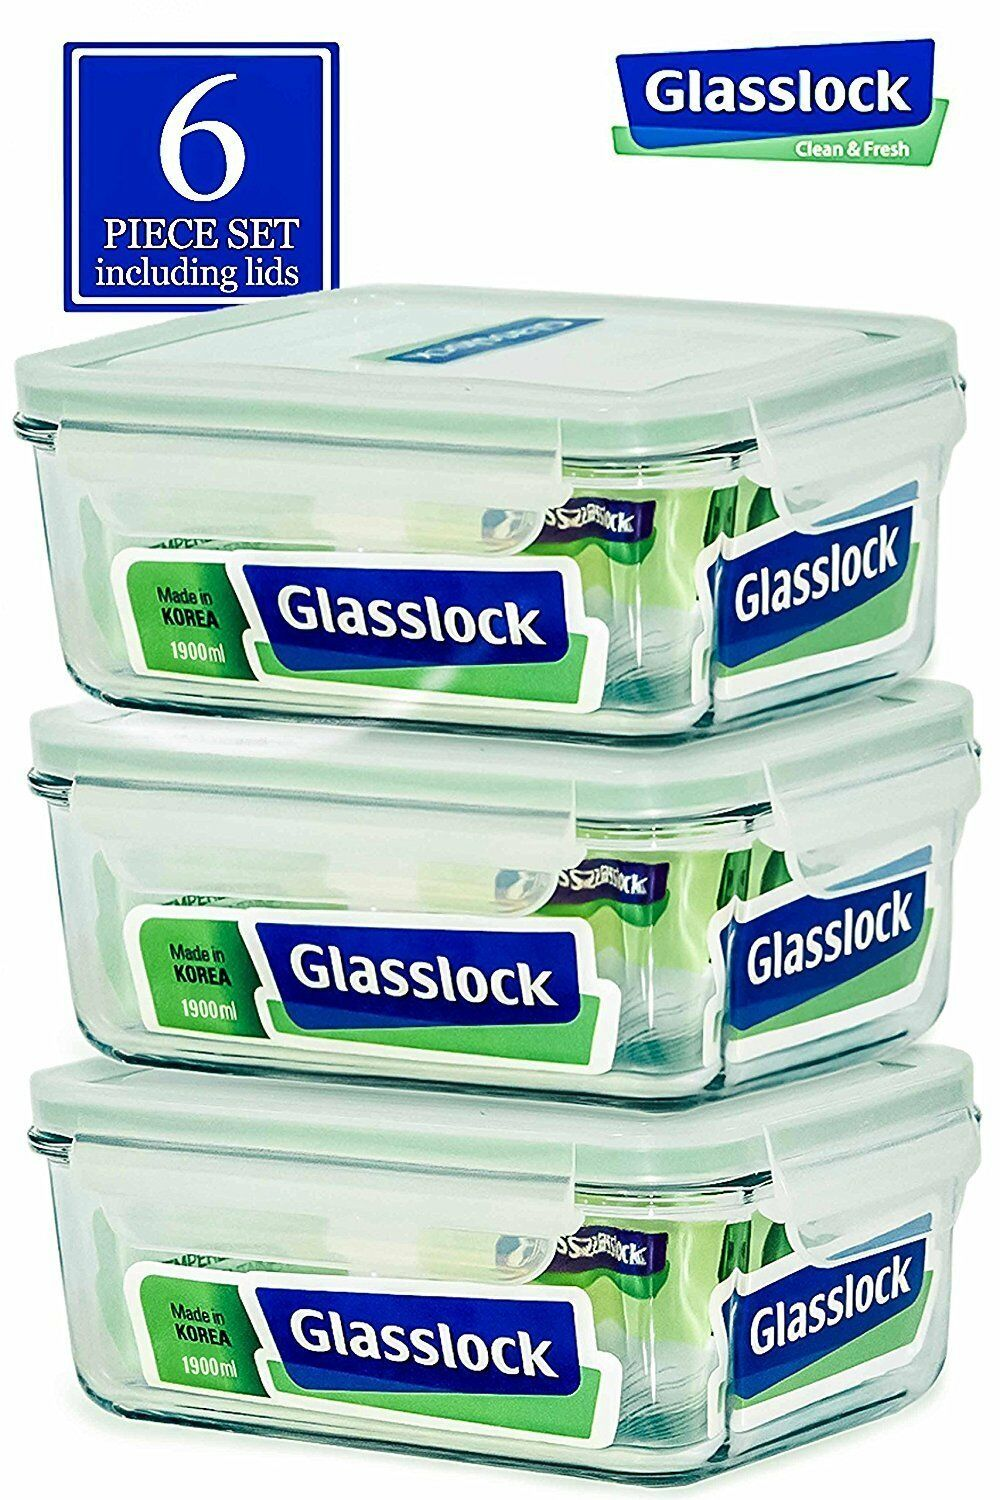 Glasslock Food-Storage Container Airtight Lids Microwave Safe 6pcs Set in 9sizes 1